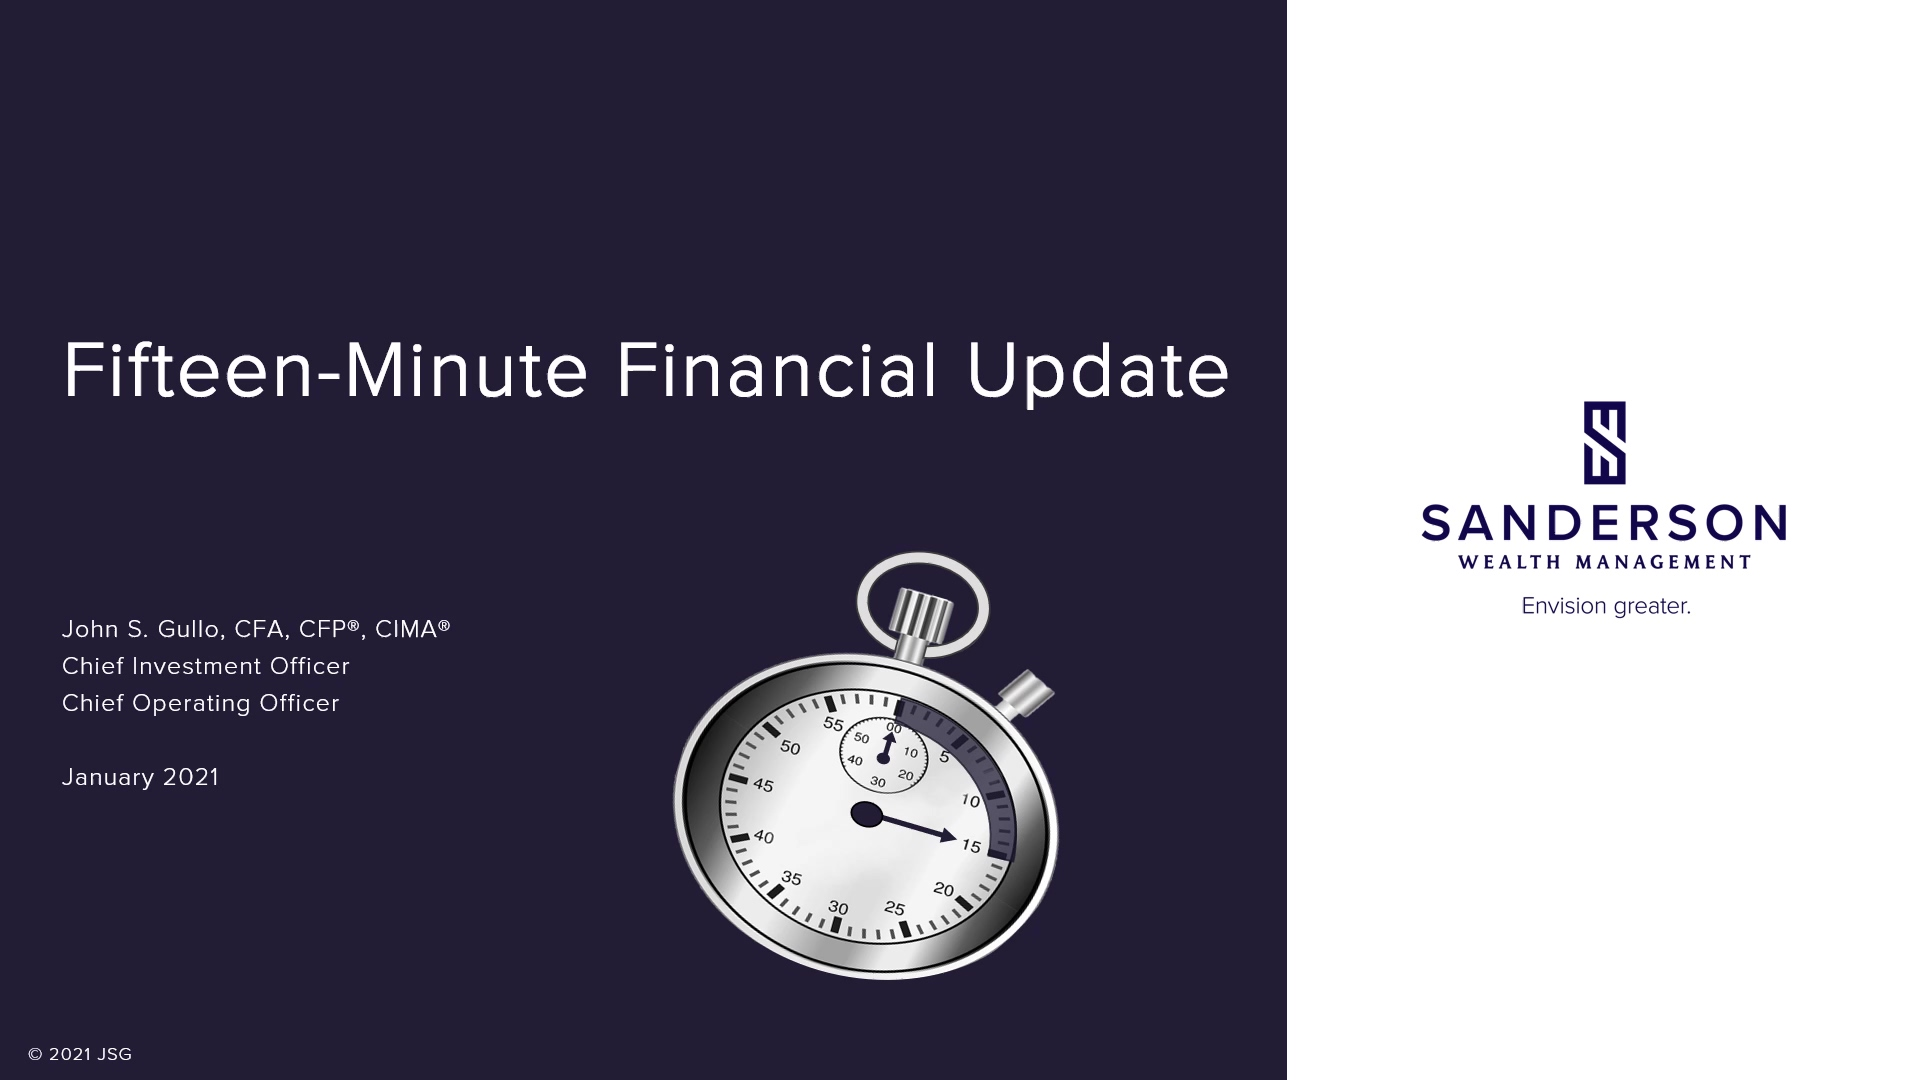 Fifteen Minute Financial Update Video for Forth Quarter 2020